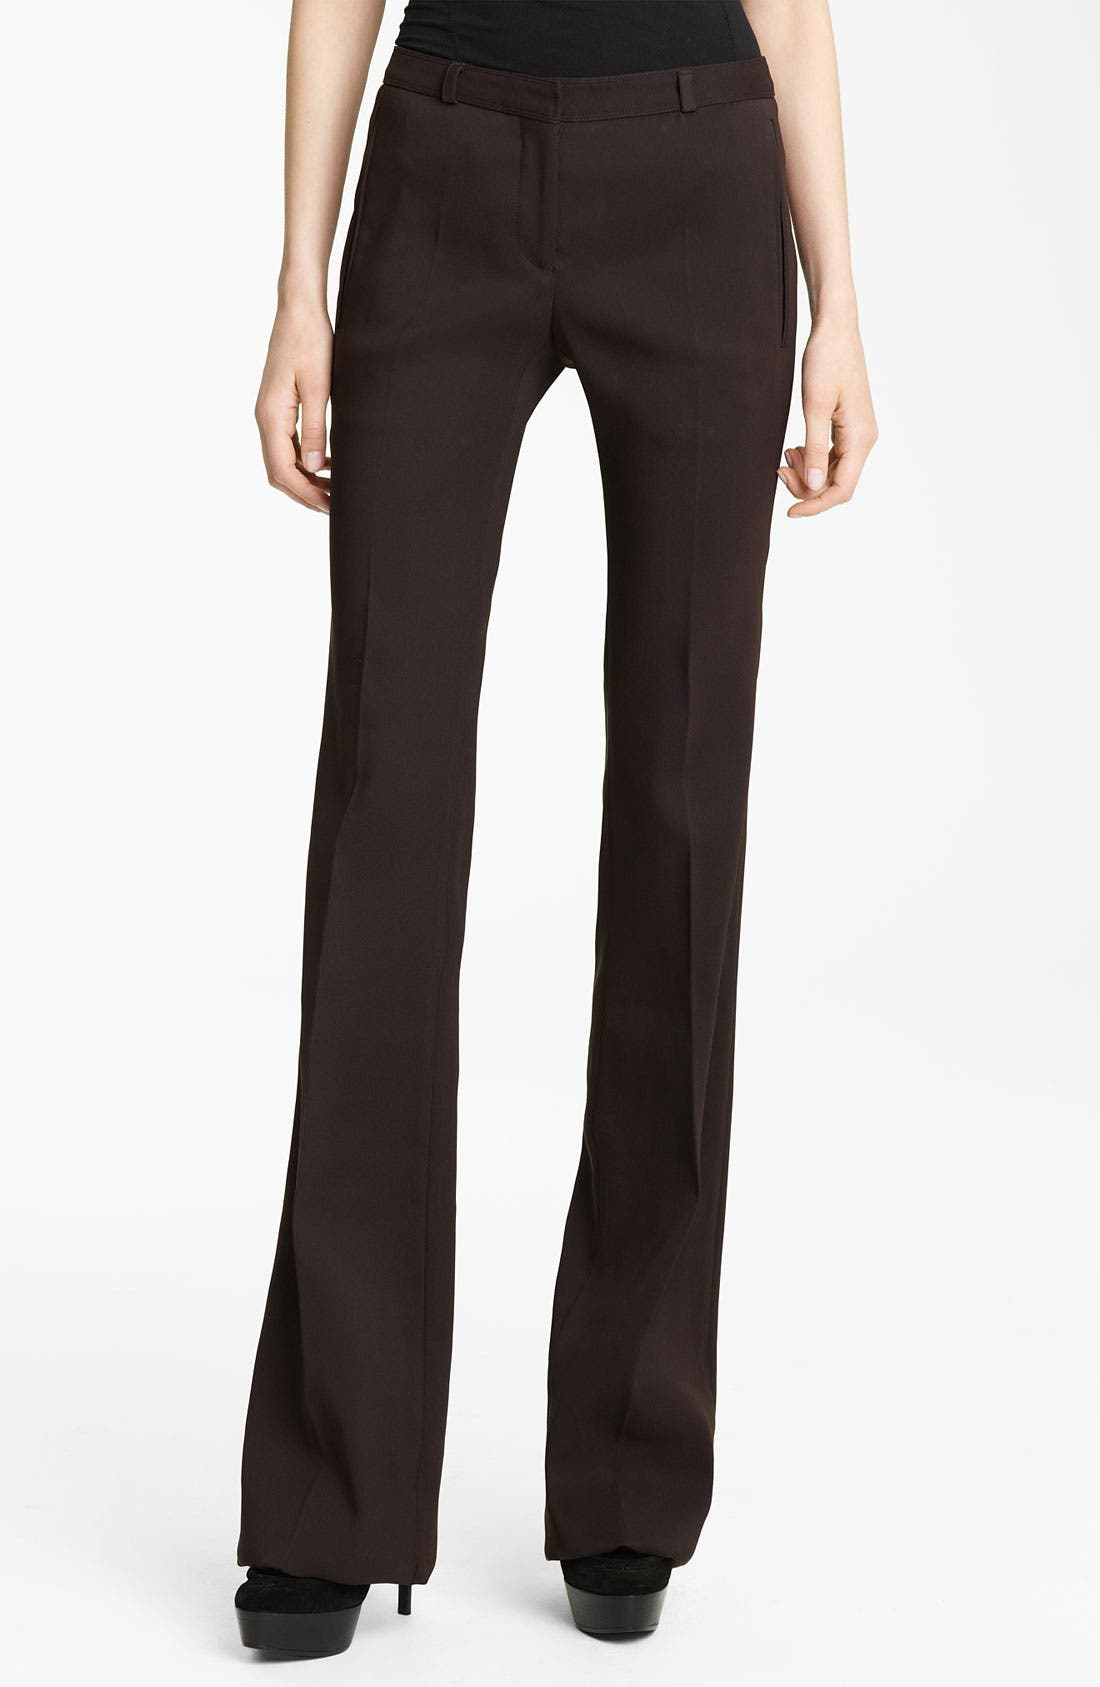 Alternate Image 1 Selected - Burberry Prorsum Flare Leg Pants